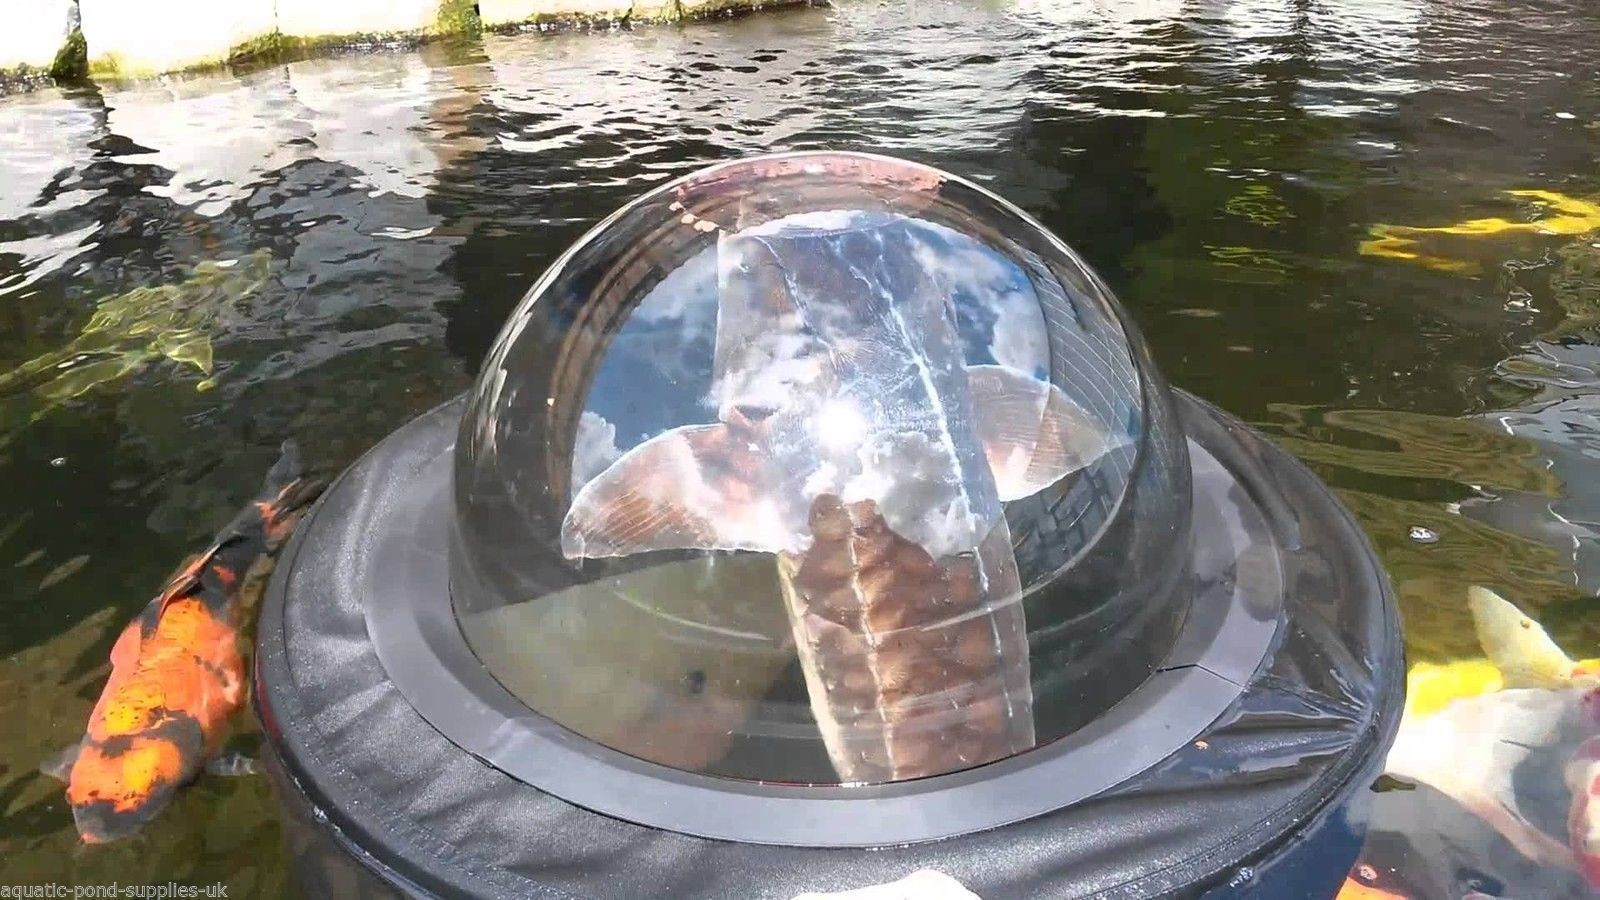 Velda floating fish sphere dome garden pond water koi for Garden pond videos